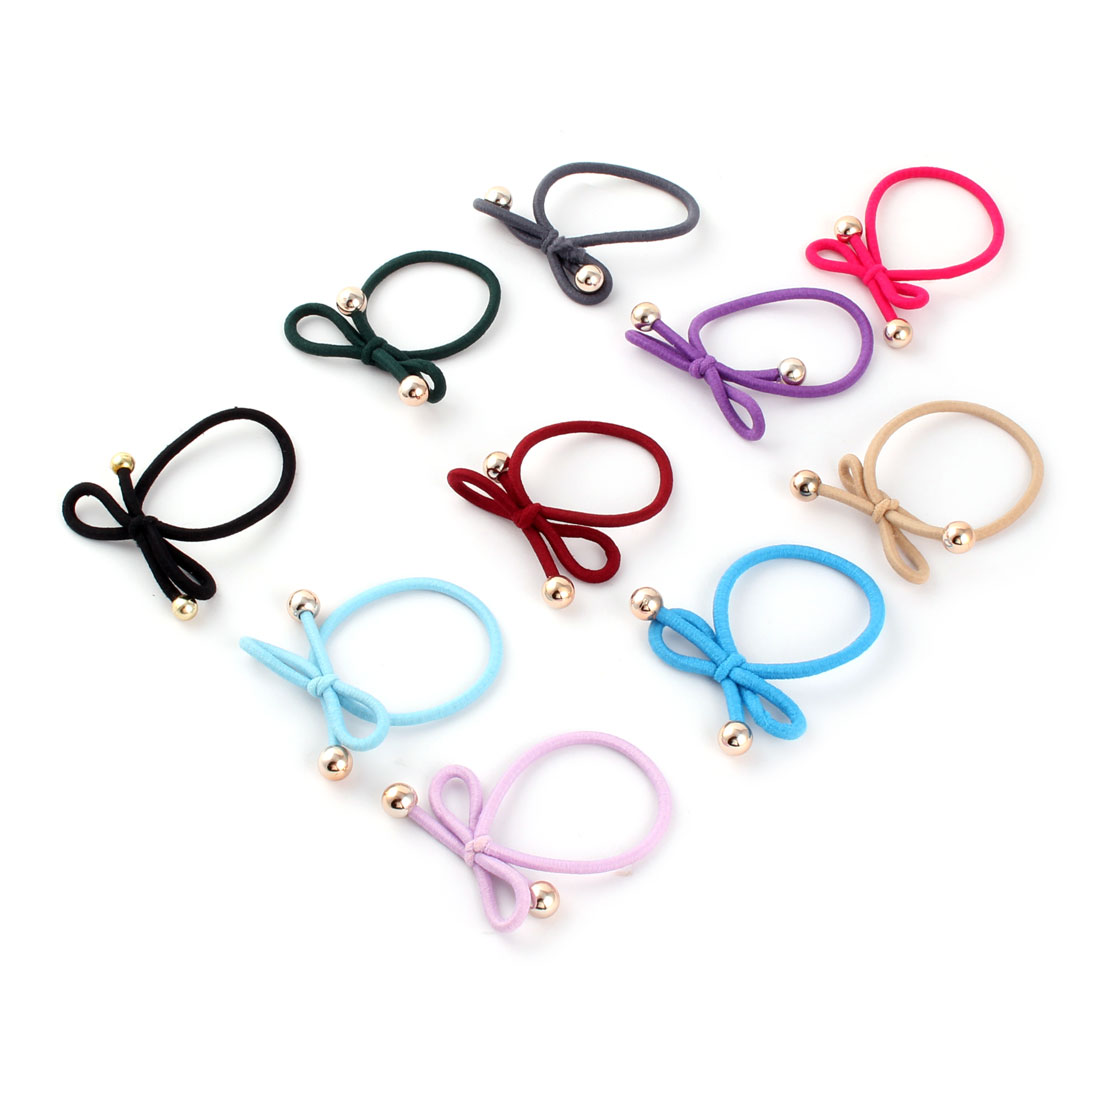 Lady Rubber Bowknot Decor Hairstyle Elastic Ponytail Holders Hair Bands 10 Pcs